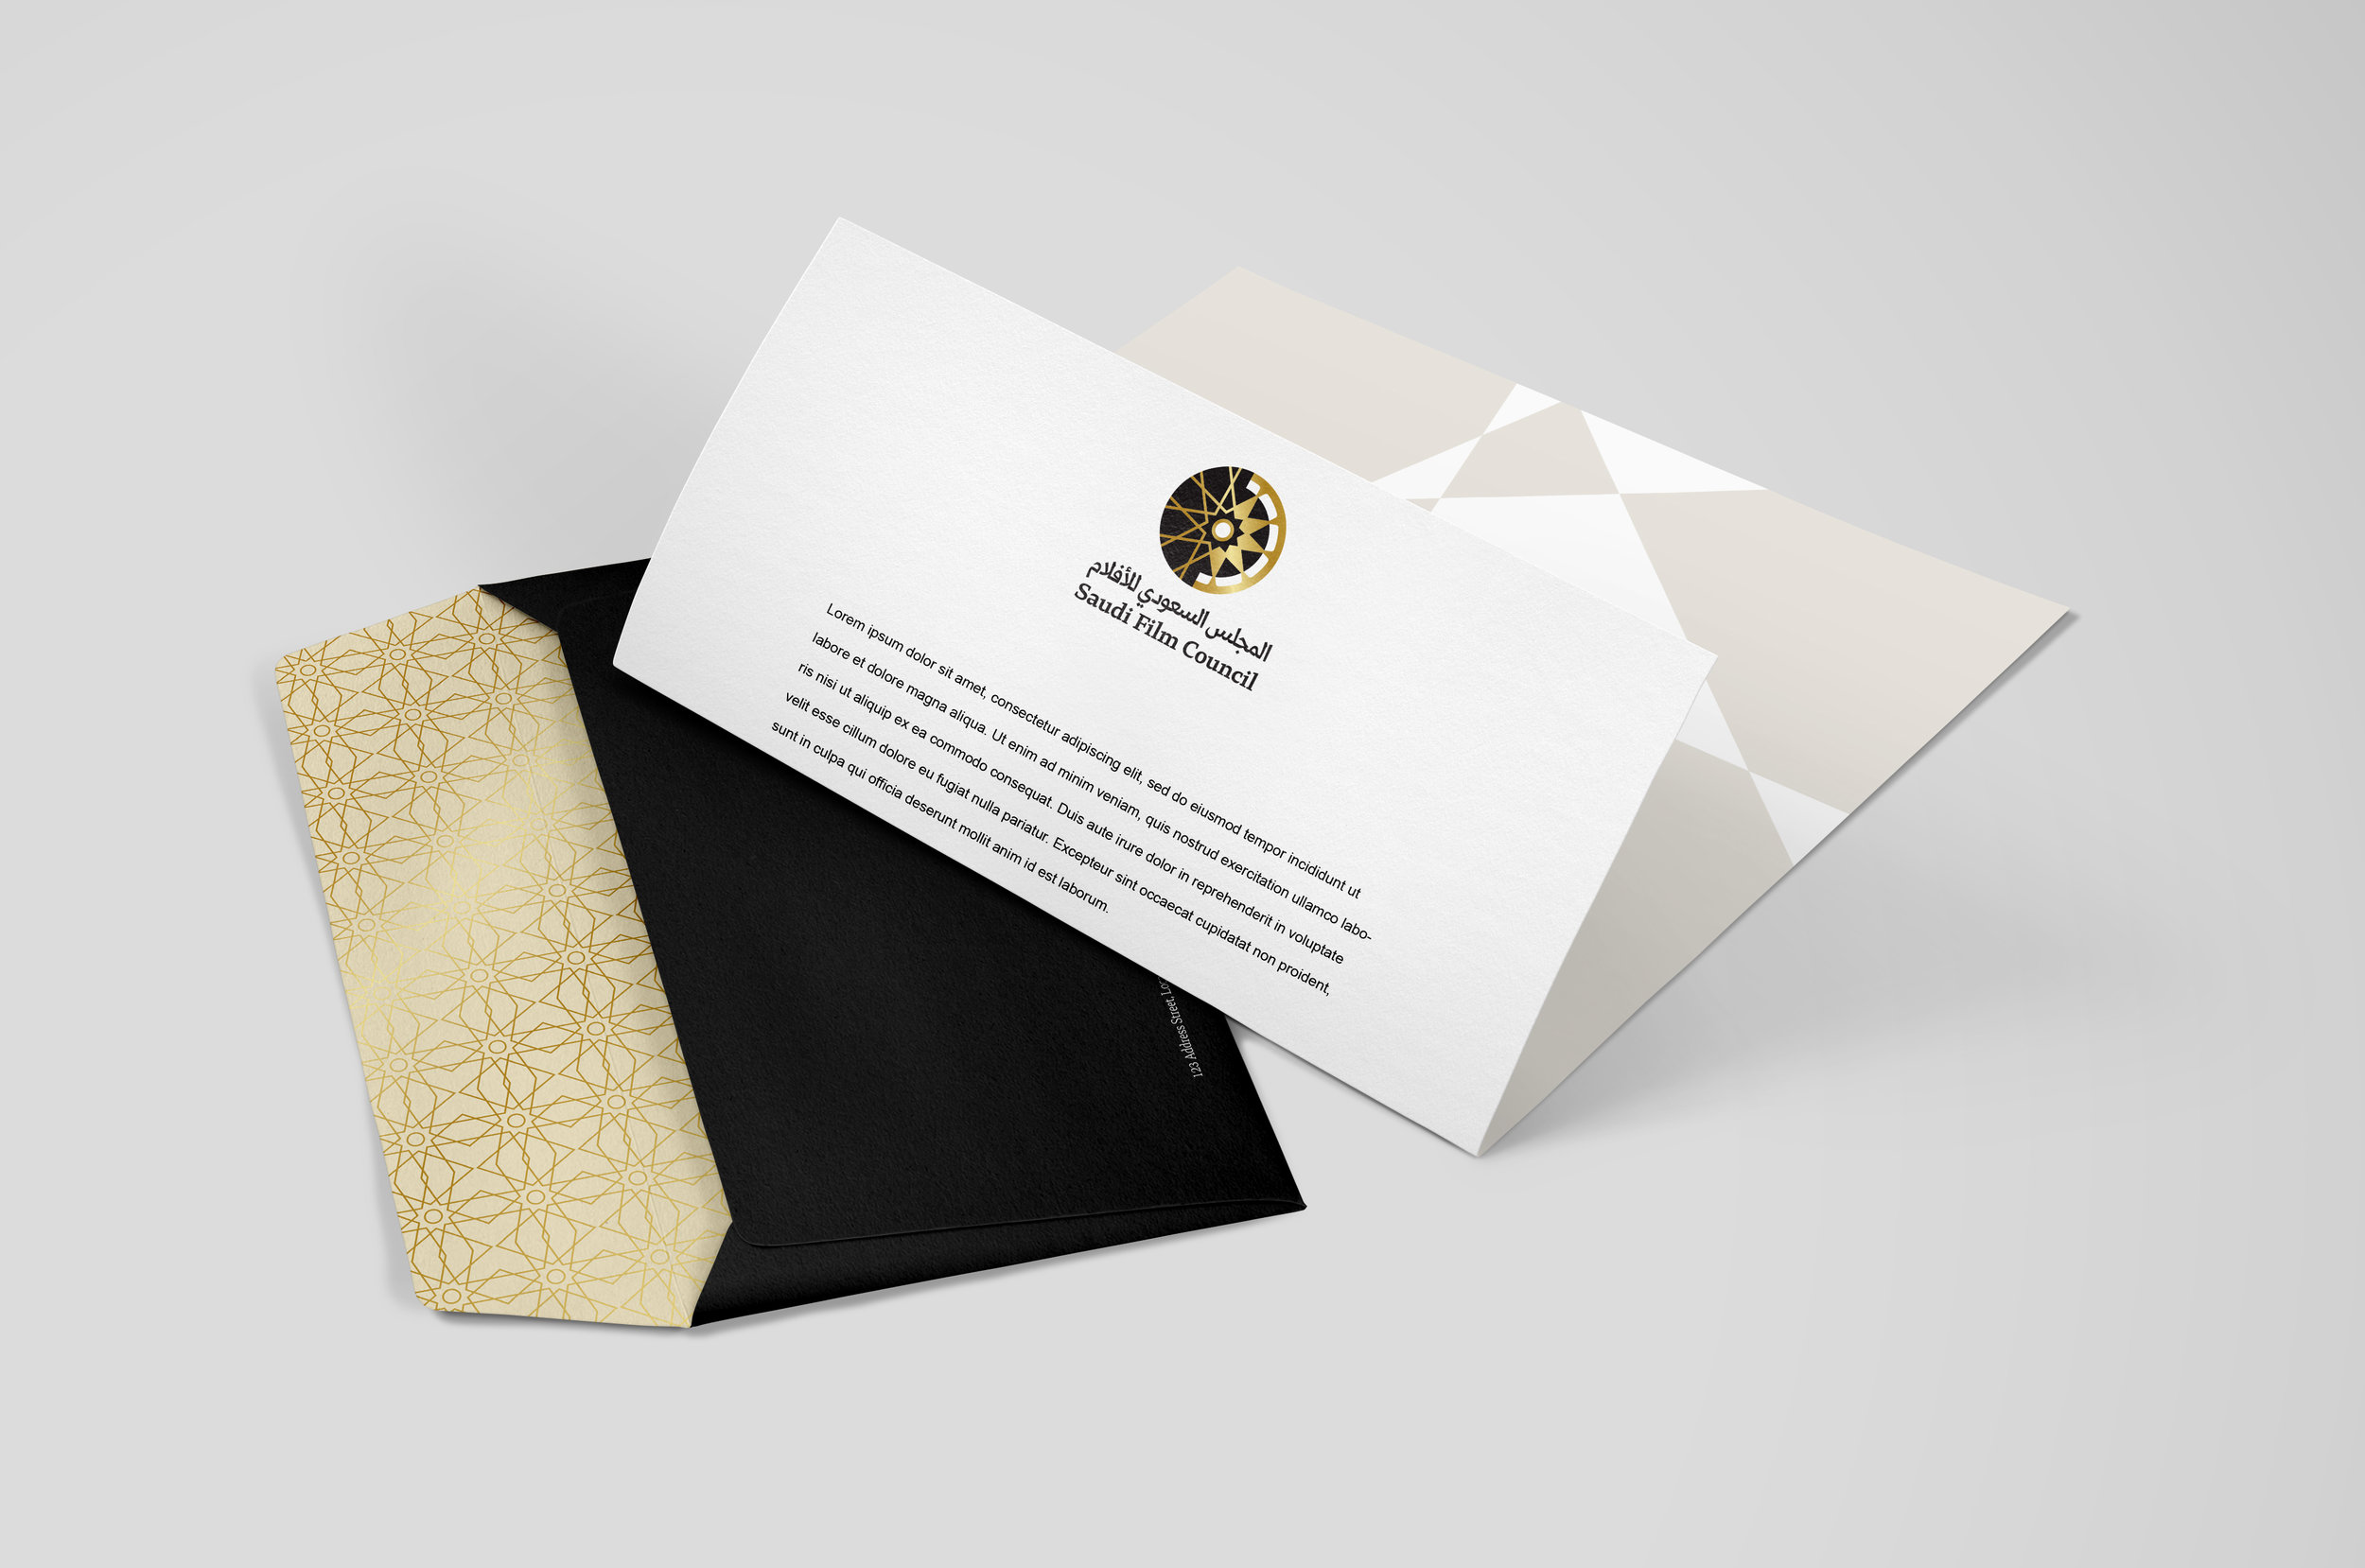 Kalian_Branding_Saudi_Film_Council_Envelope.jpg